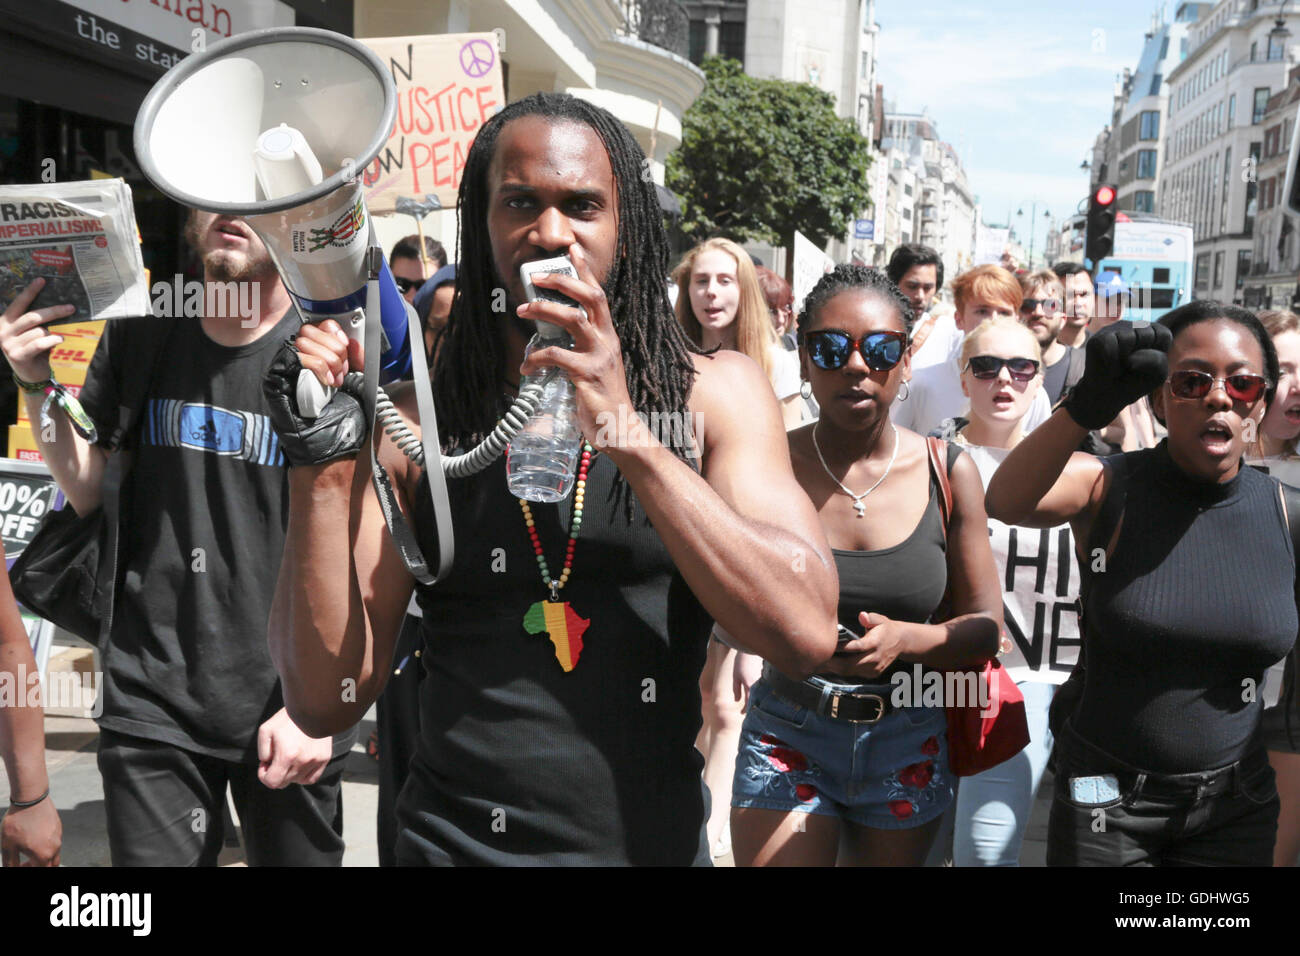 London, UK. 18th July, 2016. Demonstrators in central London protest the shooting of African Americans and deaths - Stock Image